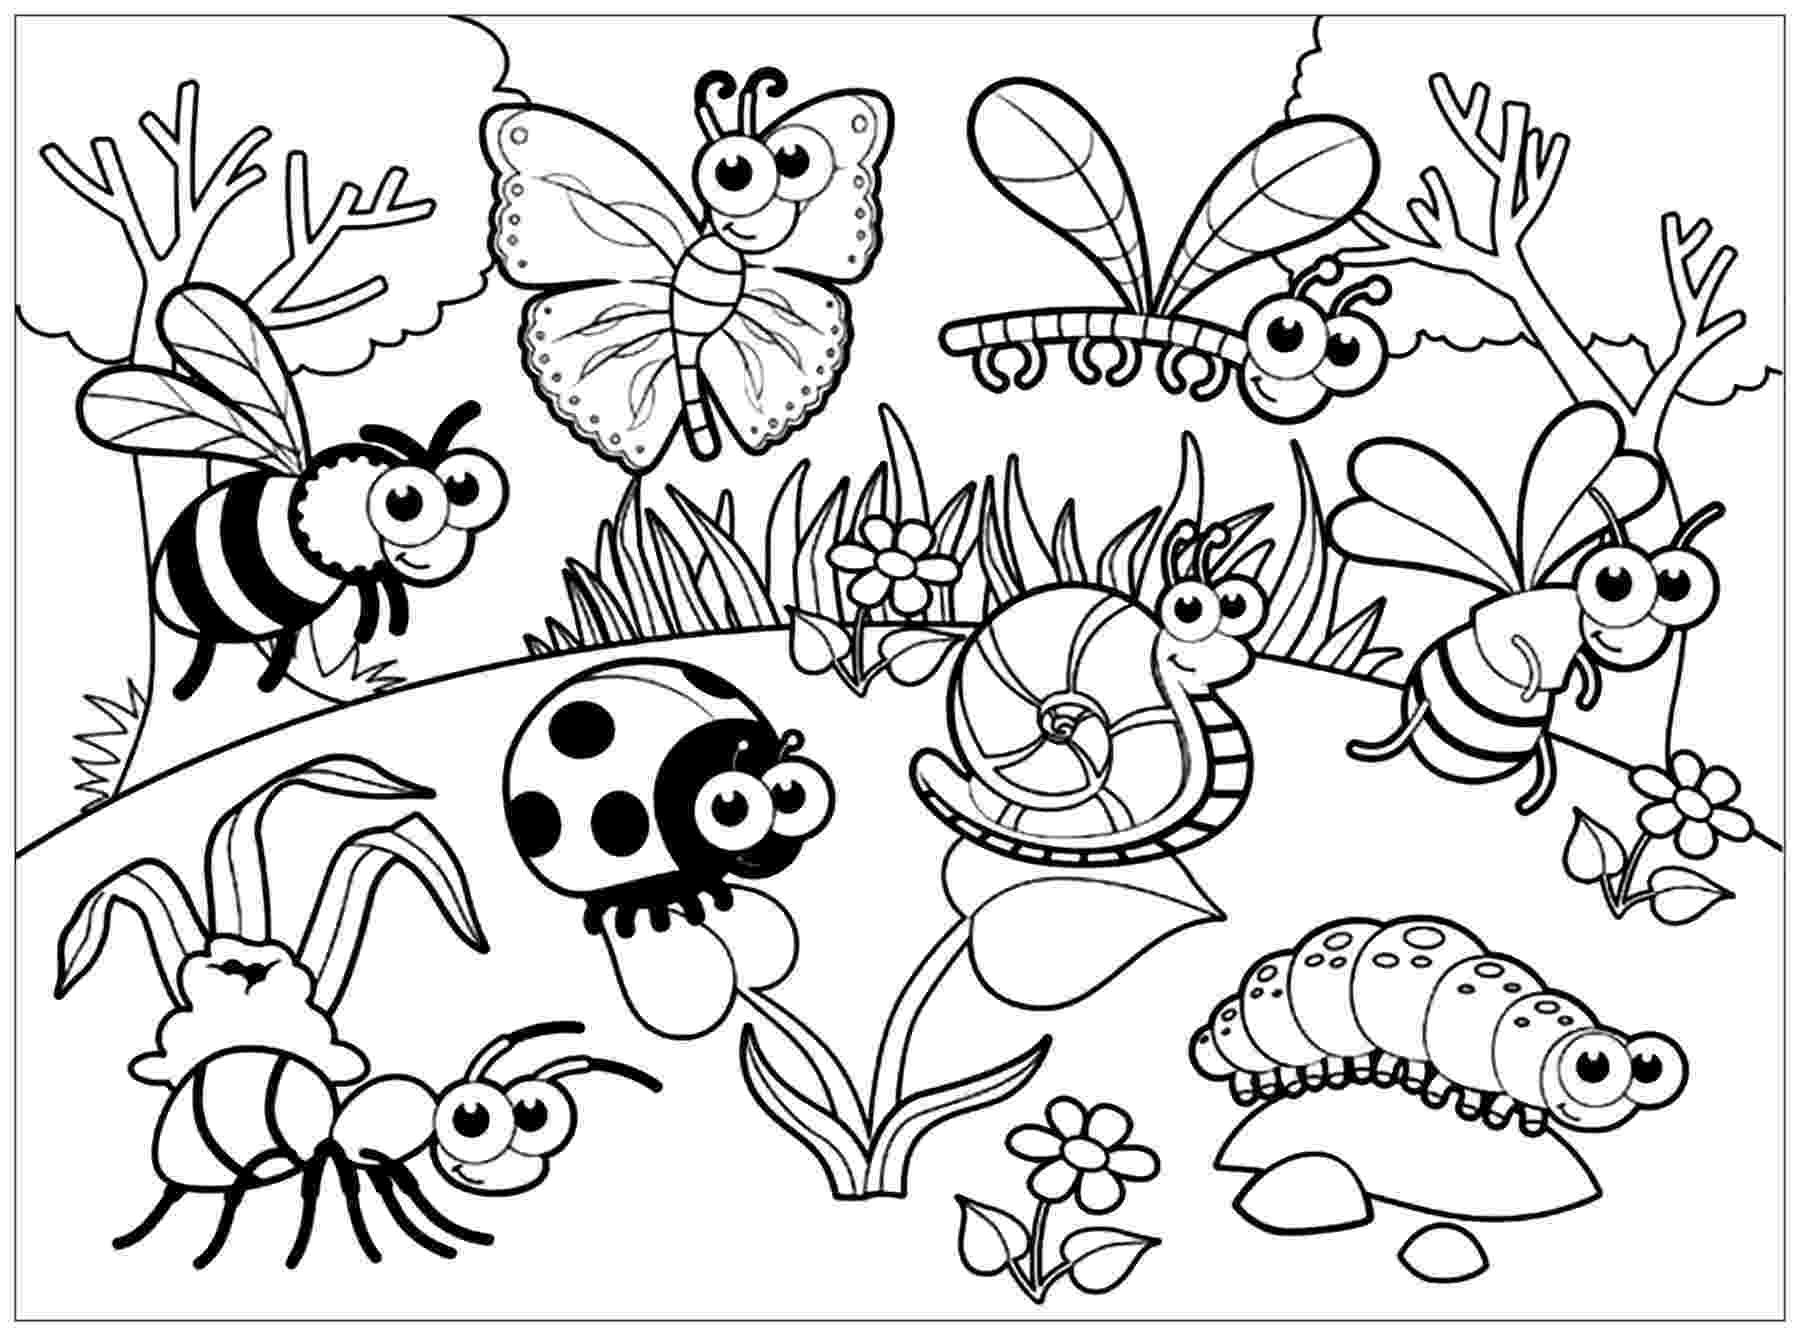 insect coloring pages preschool insects to print insects kids coloring pages coloring pages insect preschool